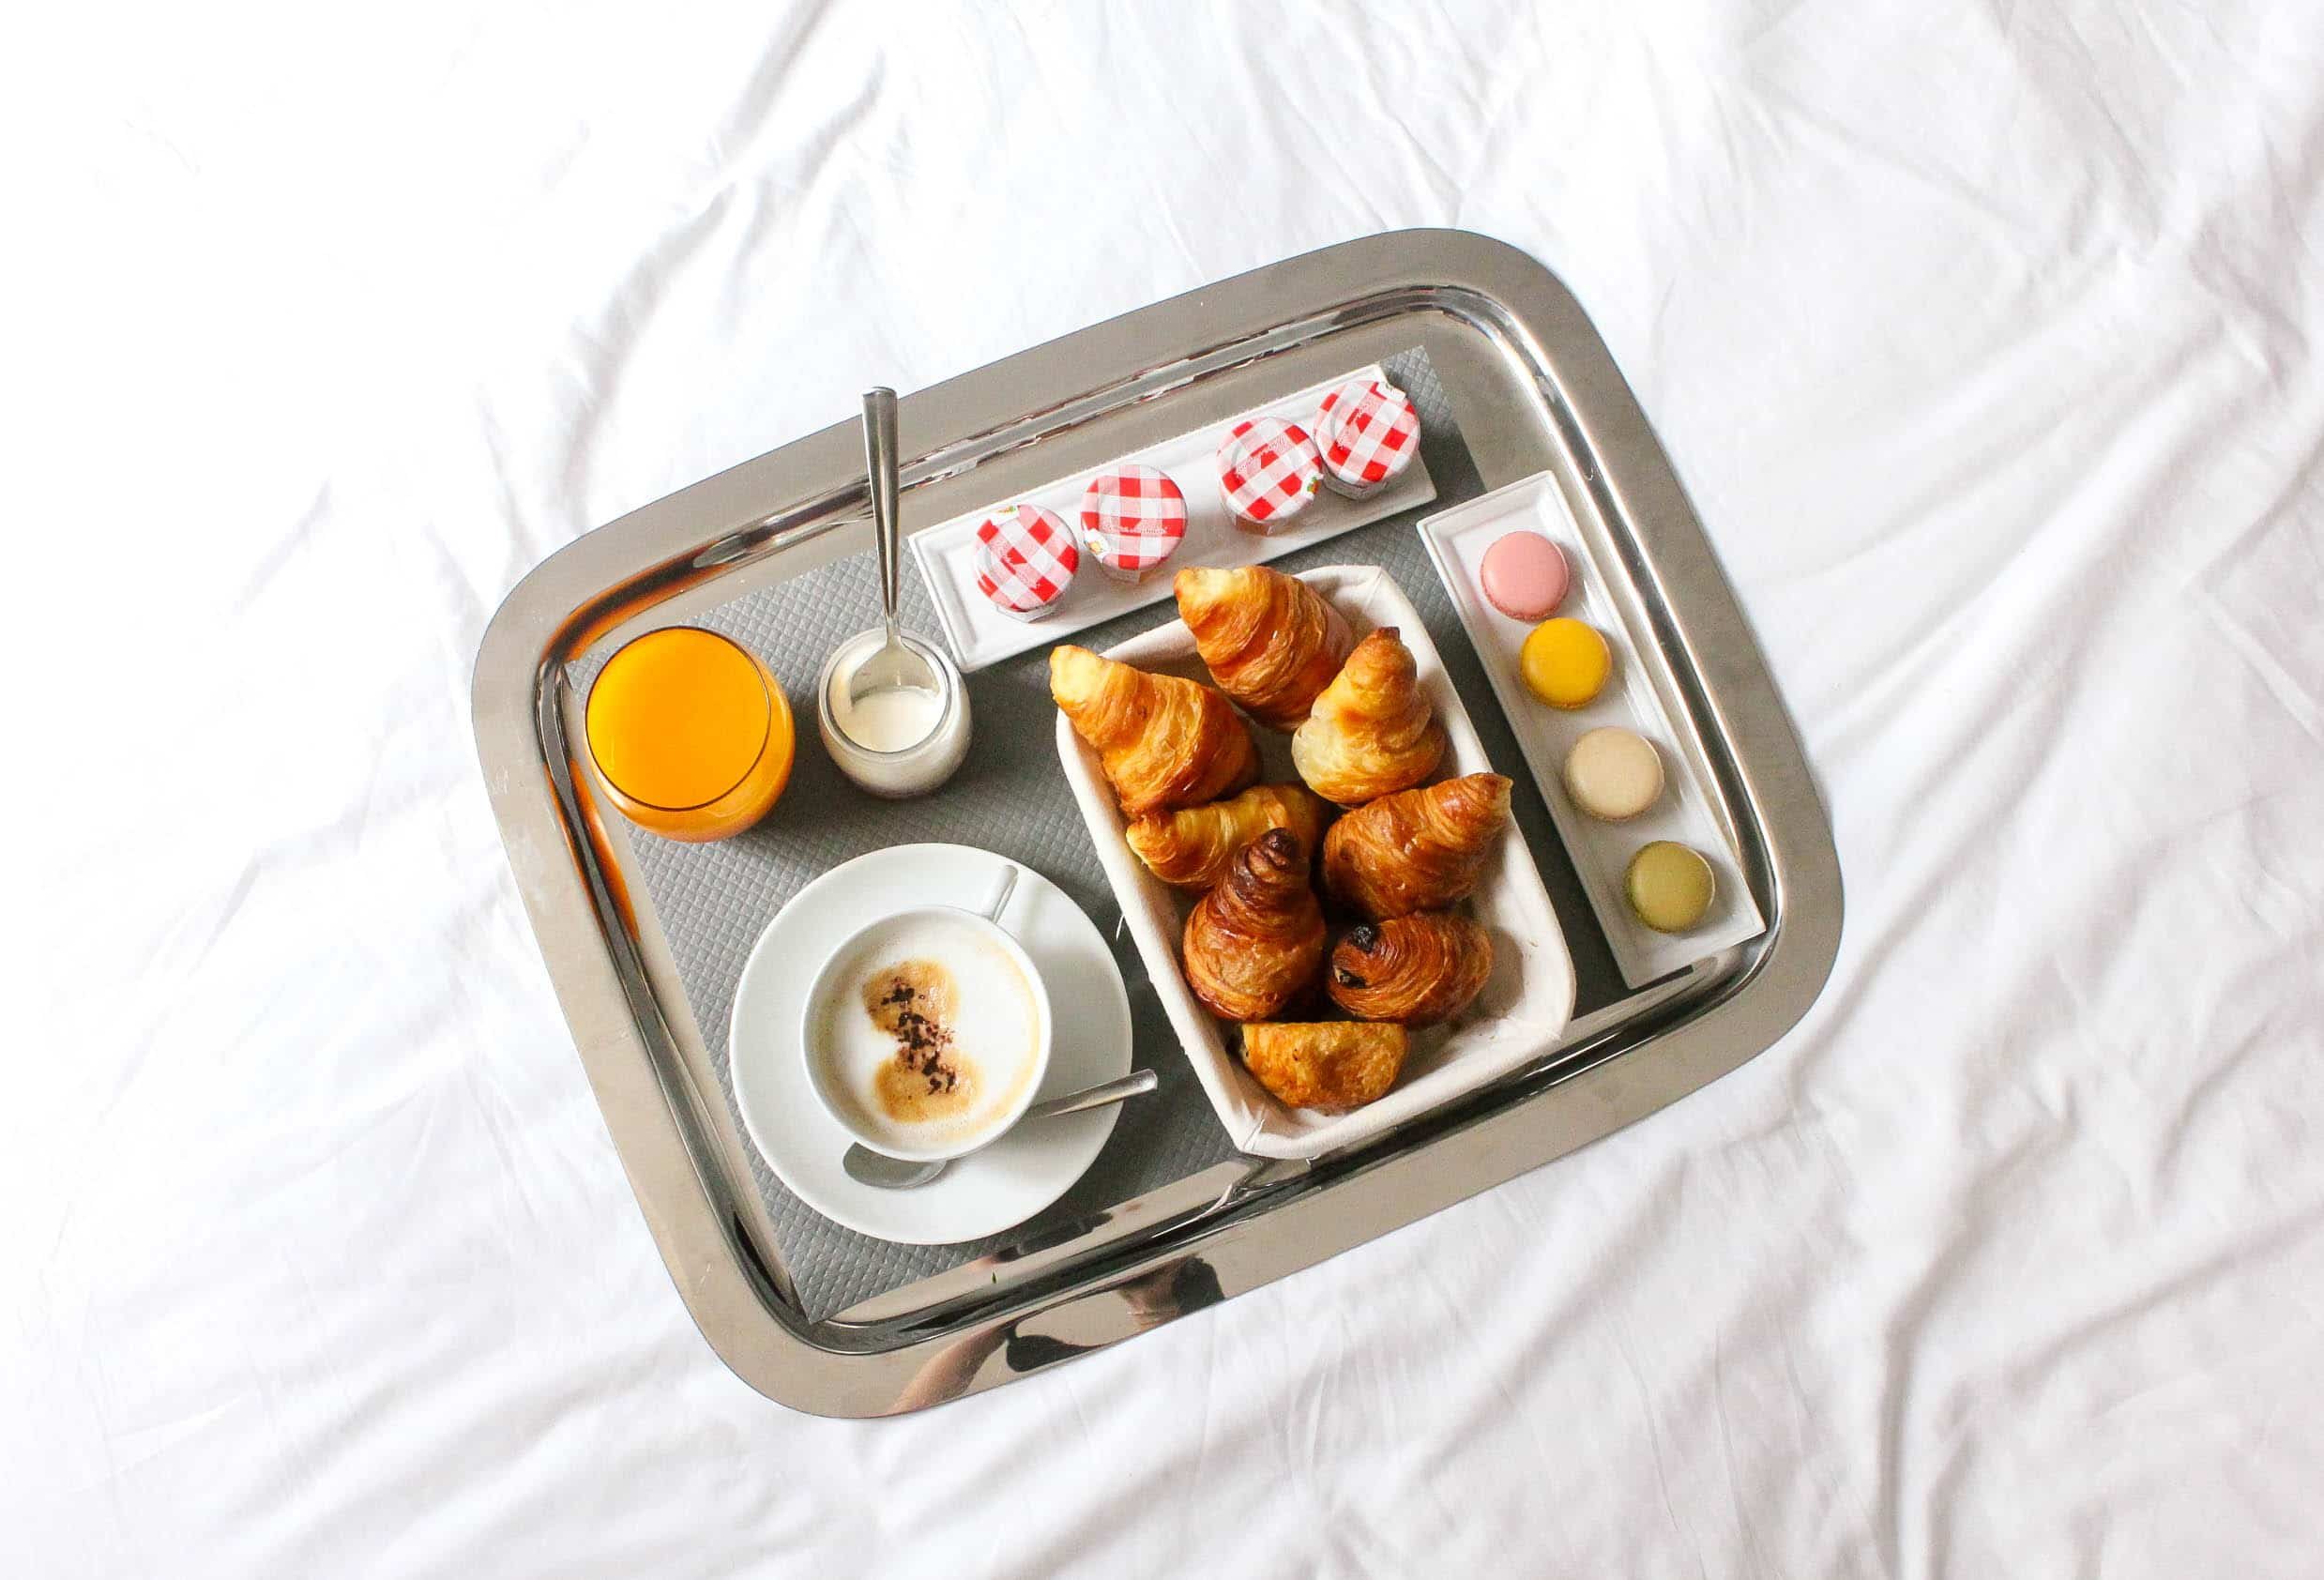 breakfast in bed, room service, missyonmadison, missyonmadison instagram, bloglovin, travel blog, travel blogger, fashion blogger, style blogger, fashion blog, pfw, paris, paris fashion week, jetaime paris, paris hotel, top paris hotels, hotel square louvois, where to stay in paris, bloglovin travel, wanderlust, 2017 travel guide, 2017 travel, paris in the fall, fall travel, missyonthemove, where to visit in paris,